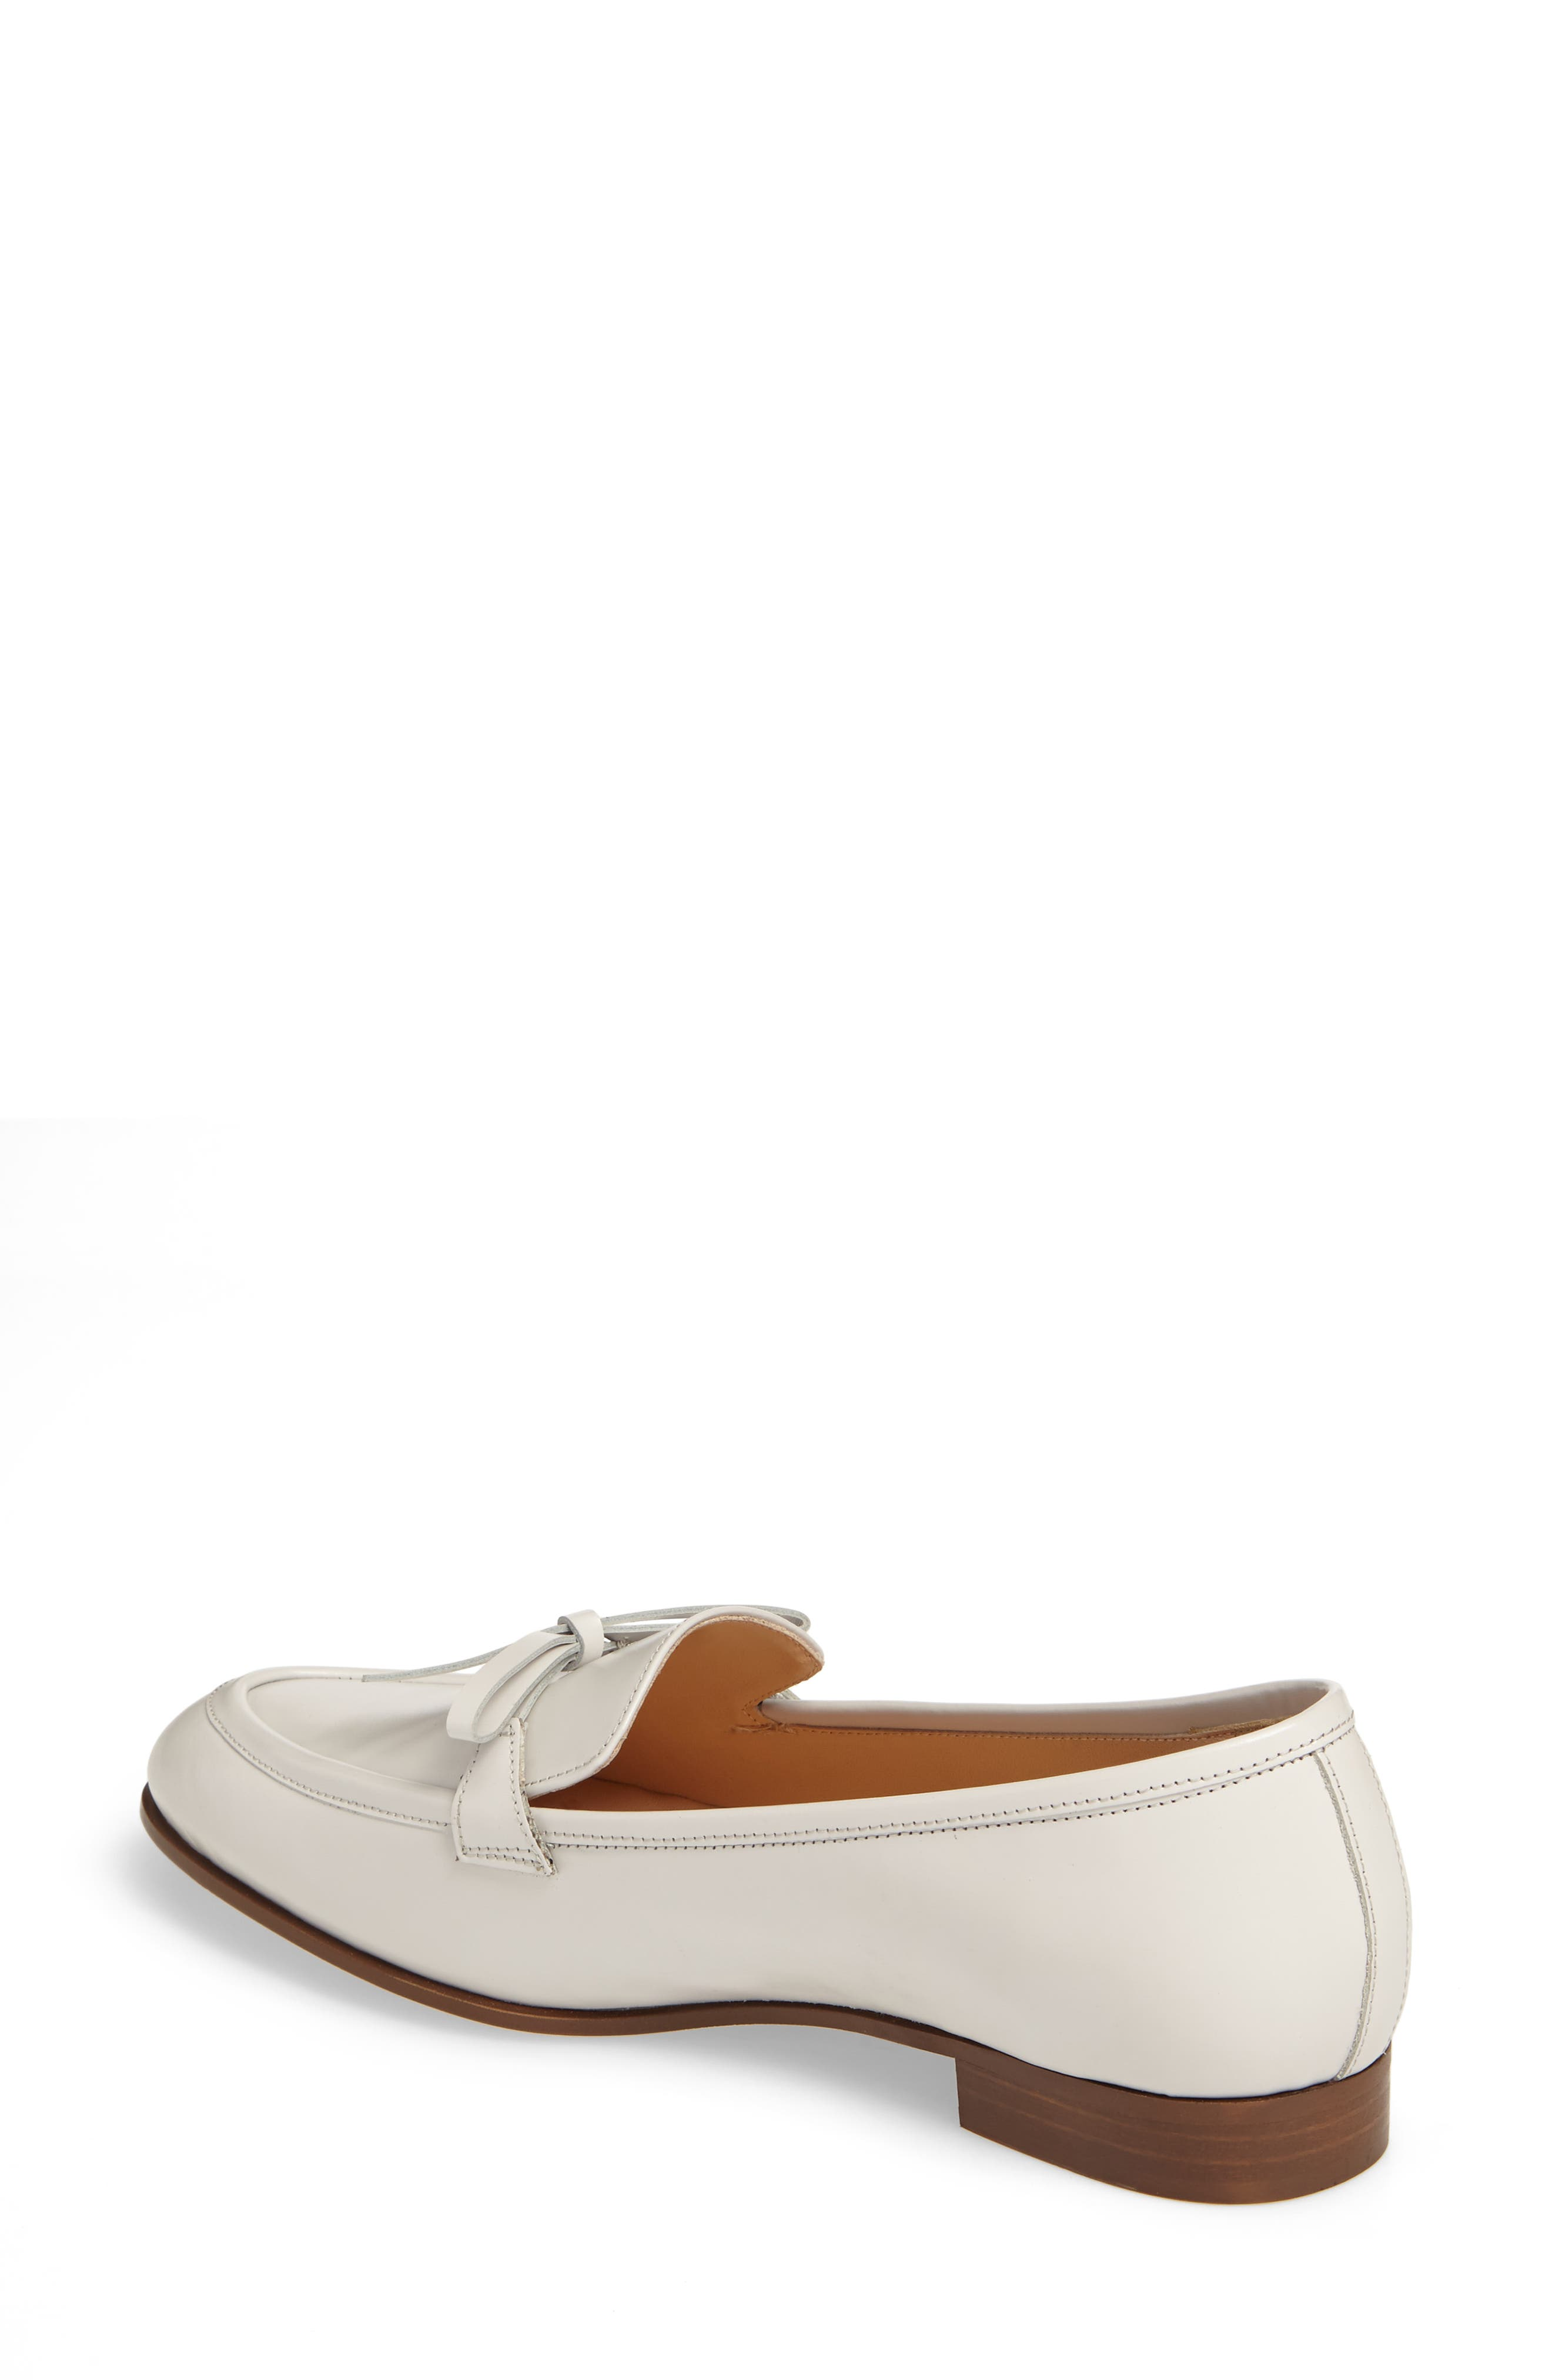 Bow Loafer,                             Alternate thumbnail 2, color,                             Highland Mist Leather